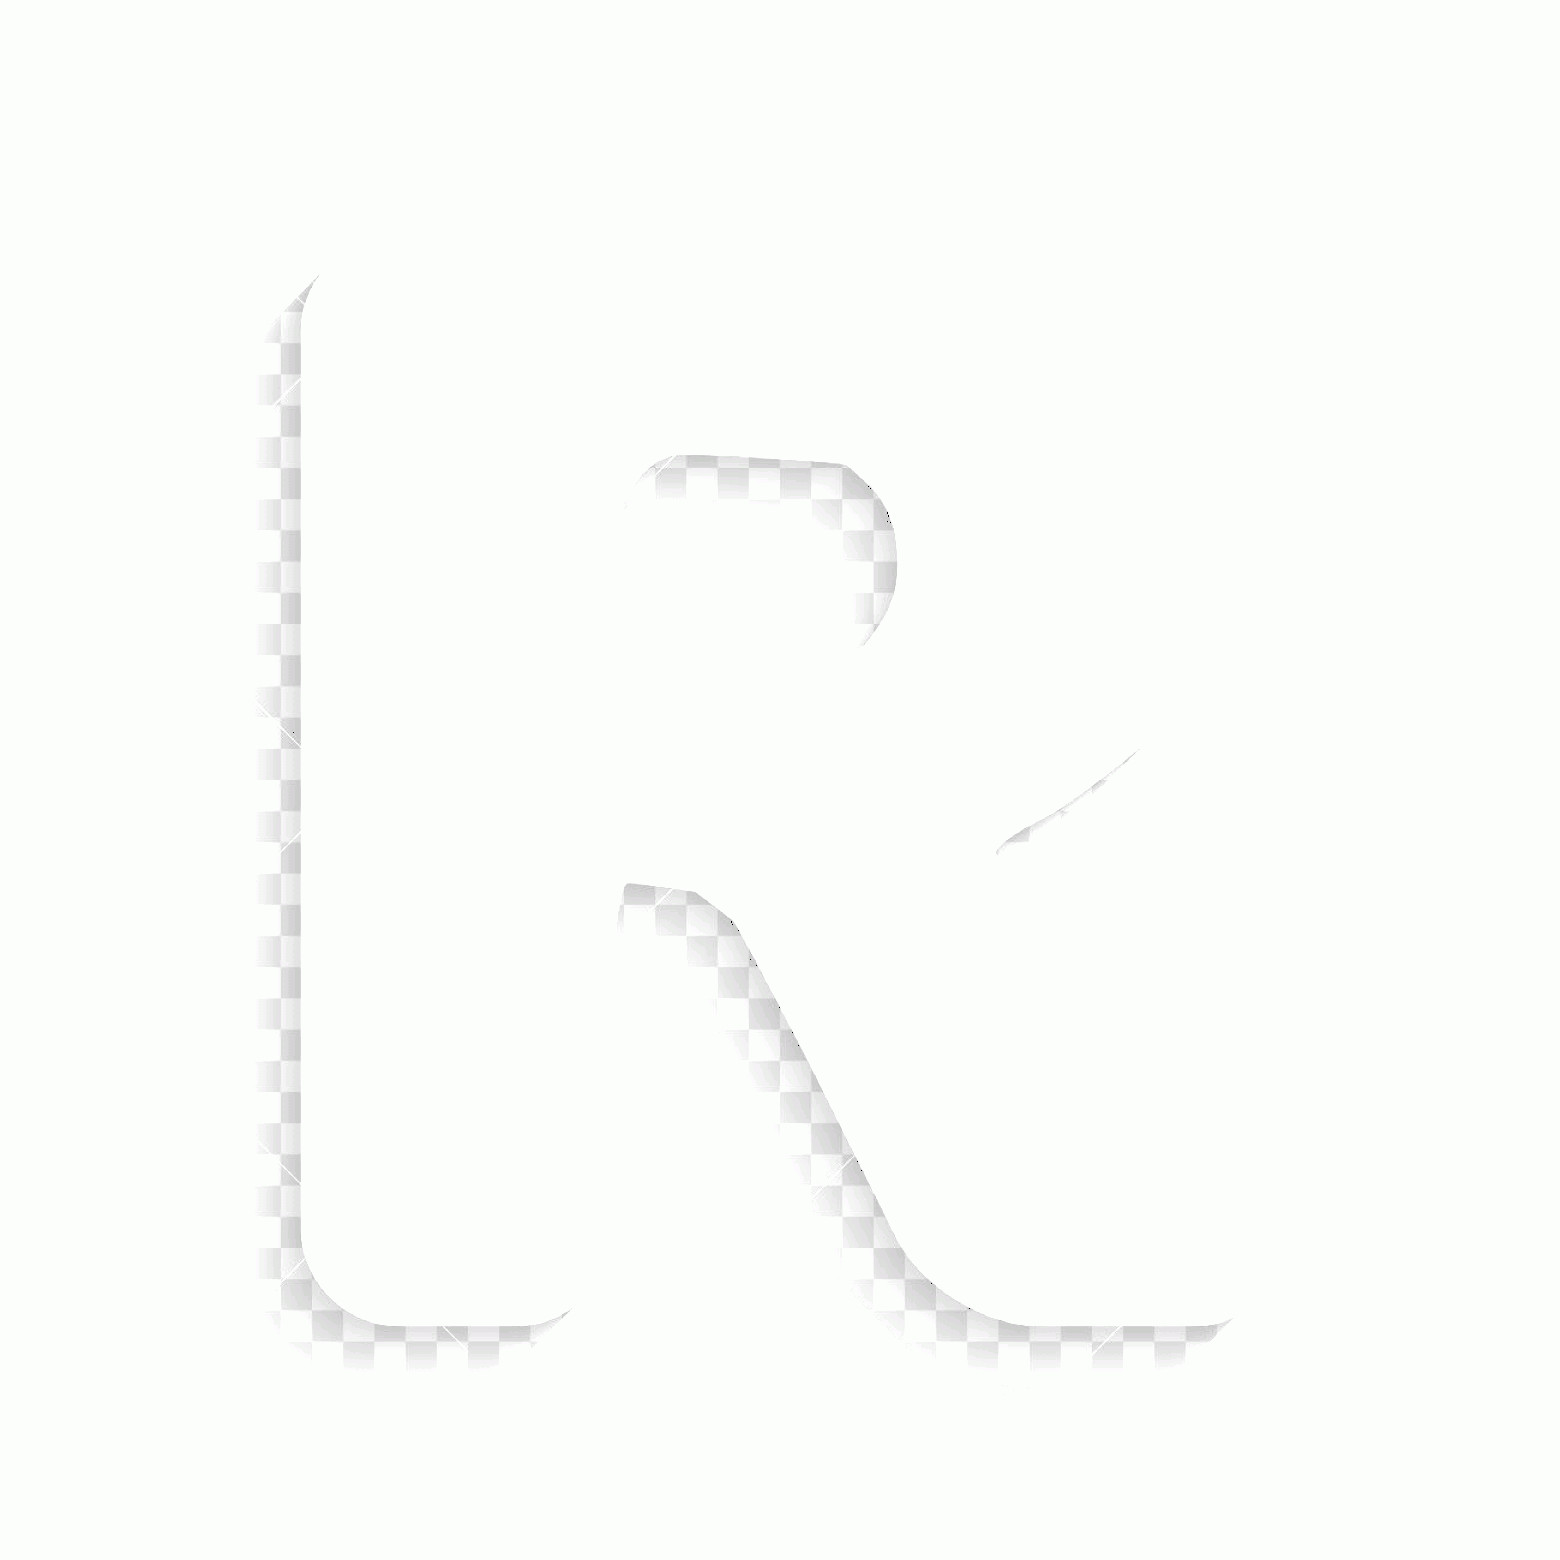 R Transparent Background Vector: Photostock Vector Letter R Sign Design Template Element Vector White Icon With Soft Shadow On Transparent Background